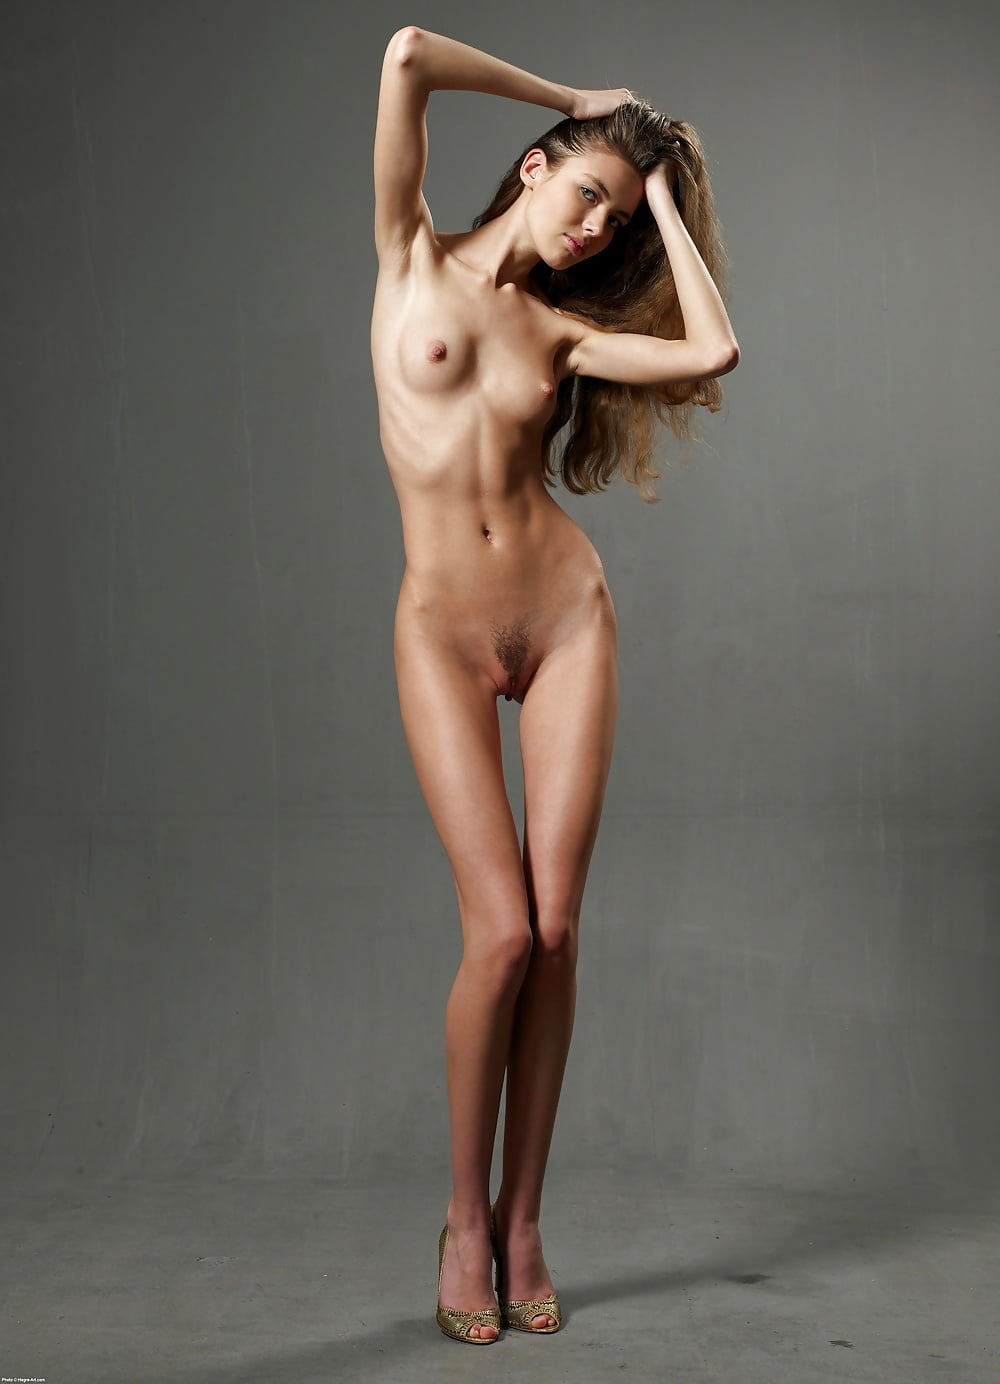 Extra skinny girl nude — photo 7